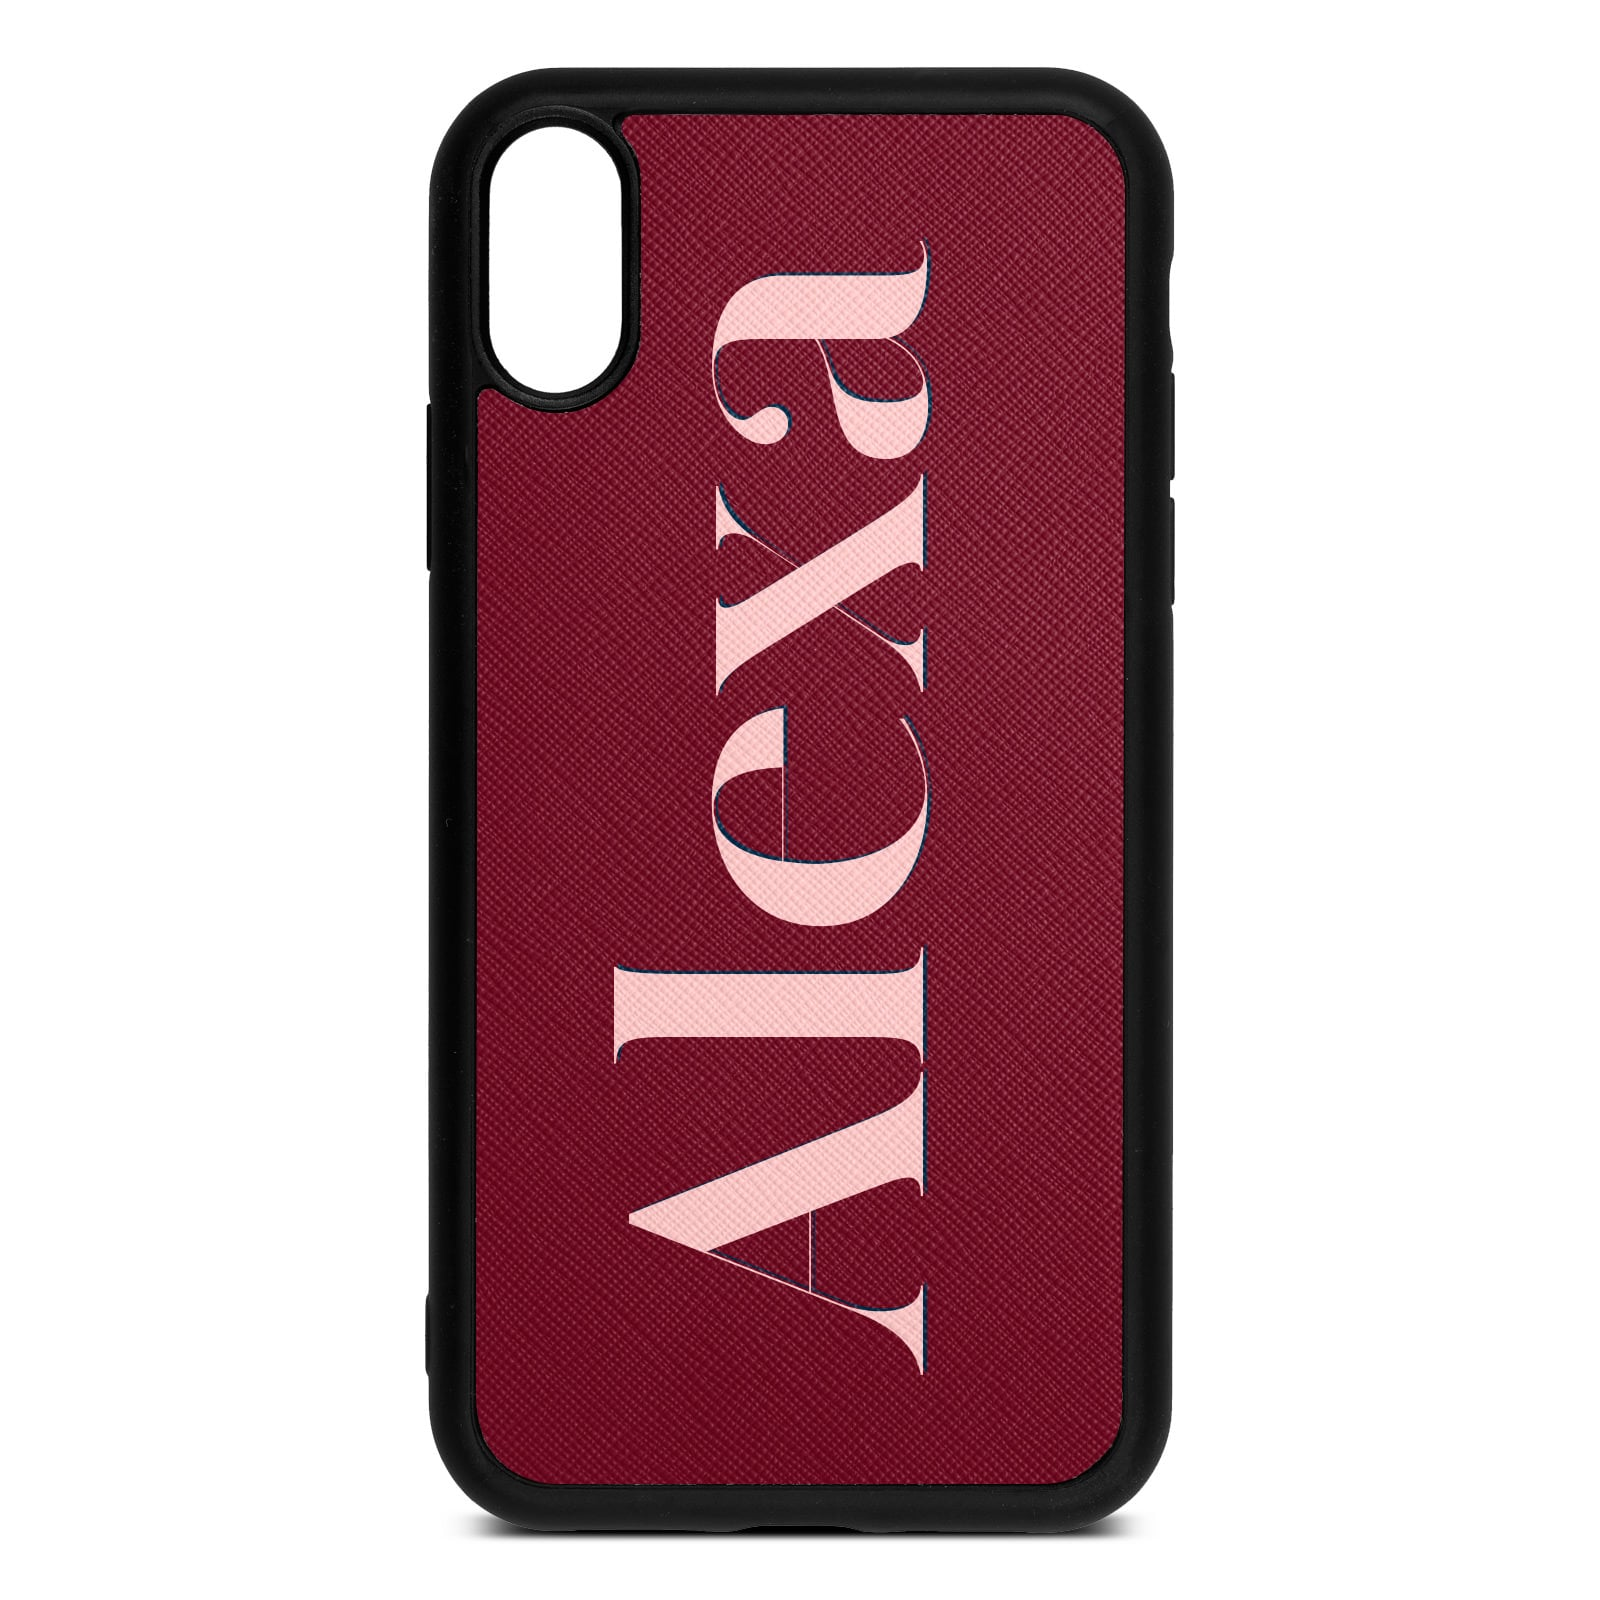 Personalised Dark Red Saffiano Leather iPhone XR Case